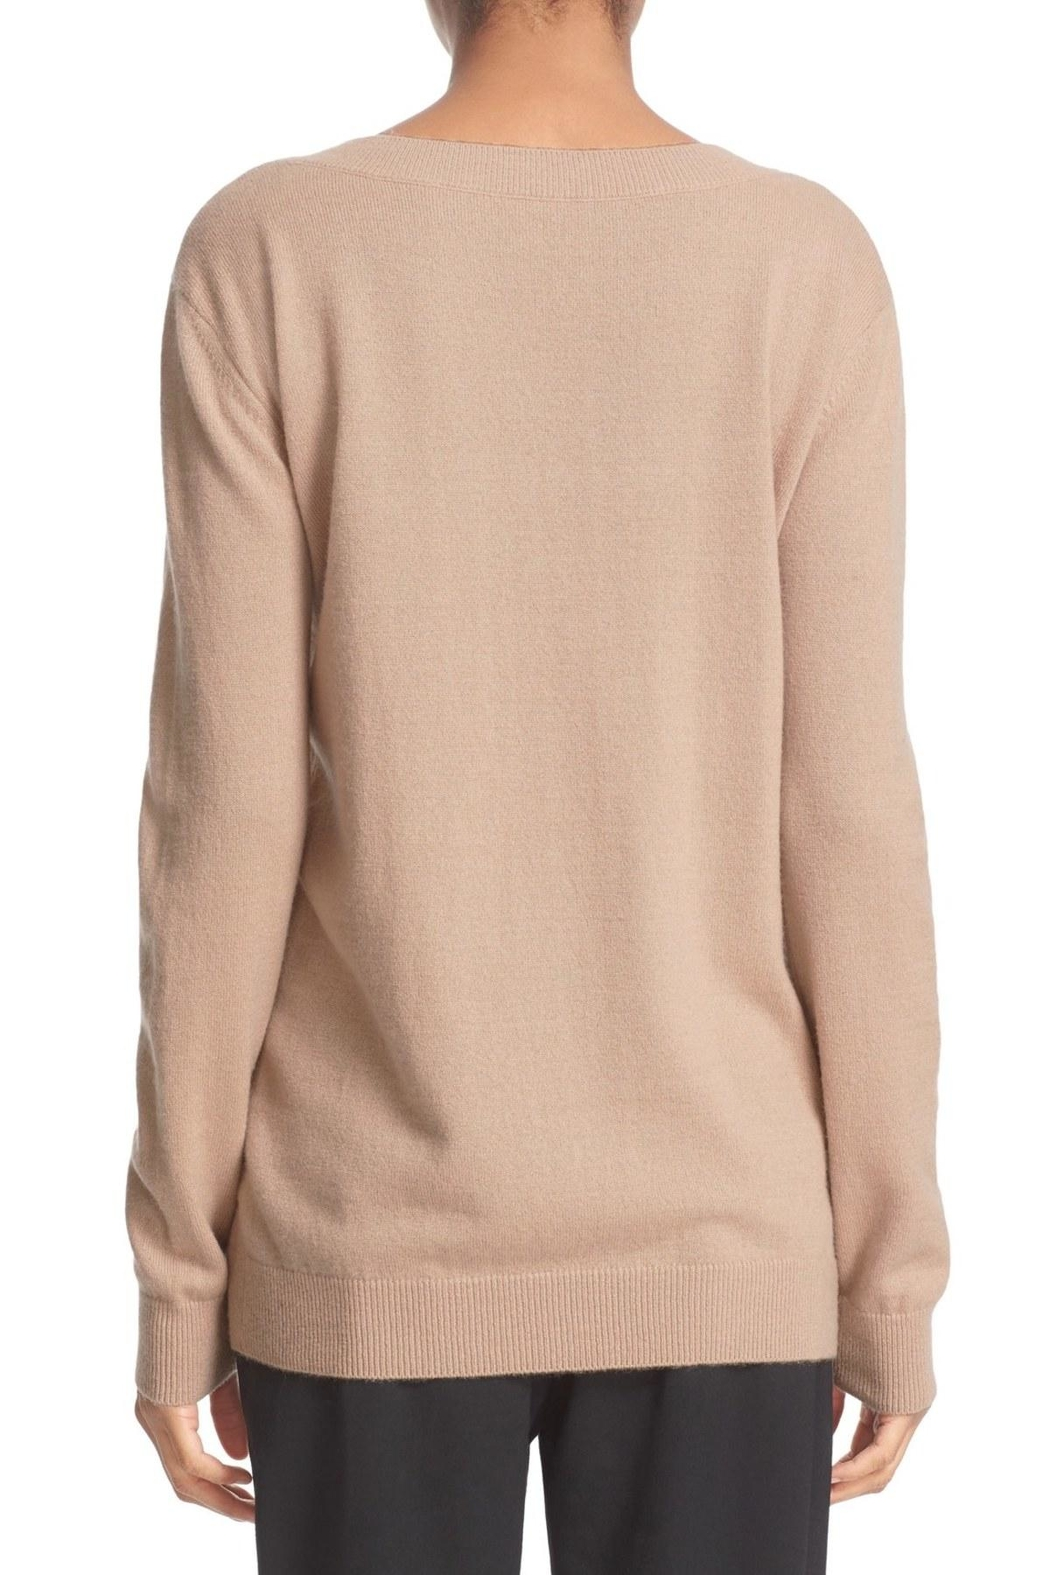 Vince Vee Cashmere Sweater - Side Cropped Image